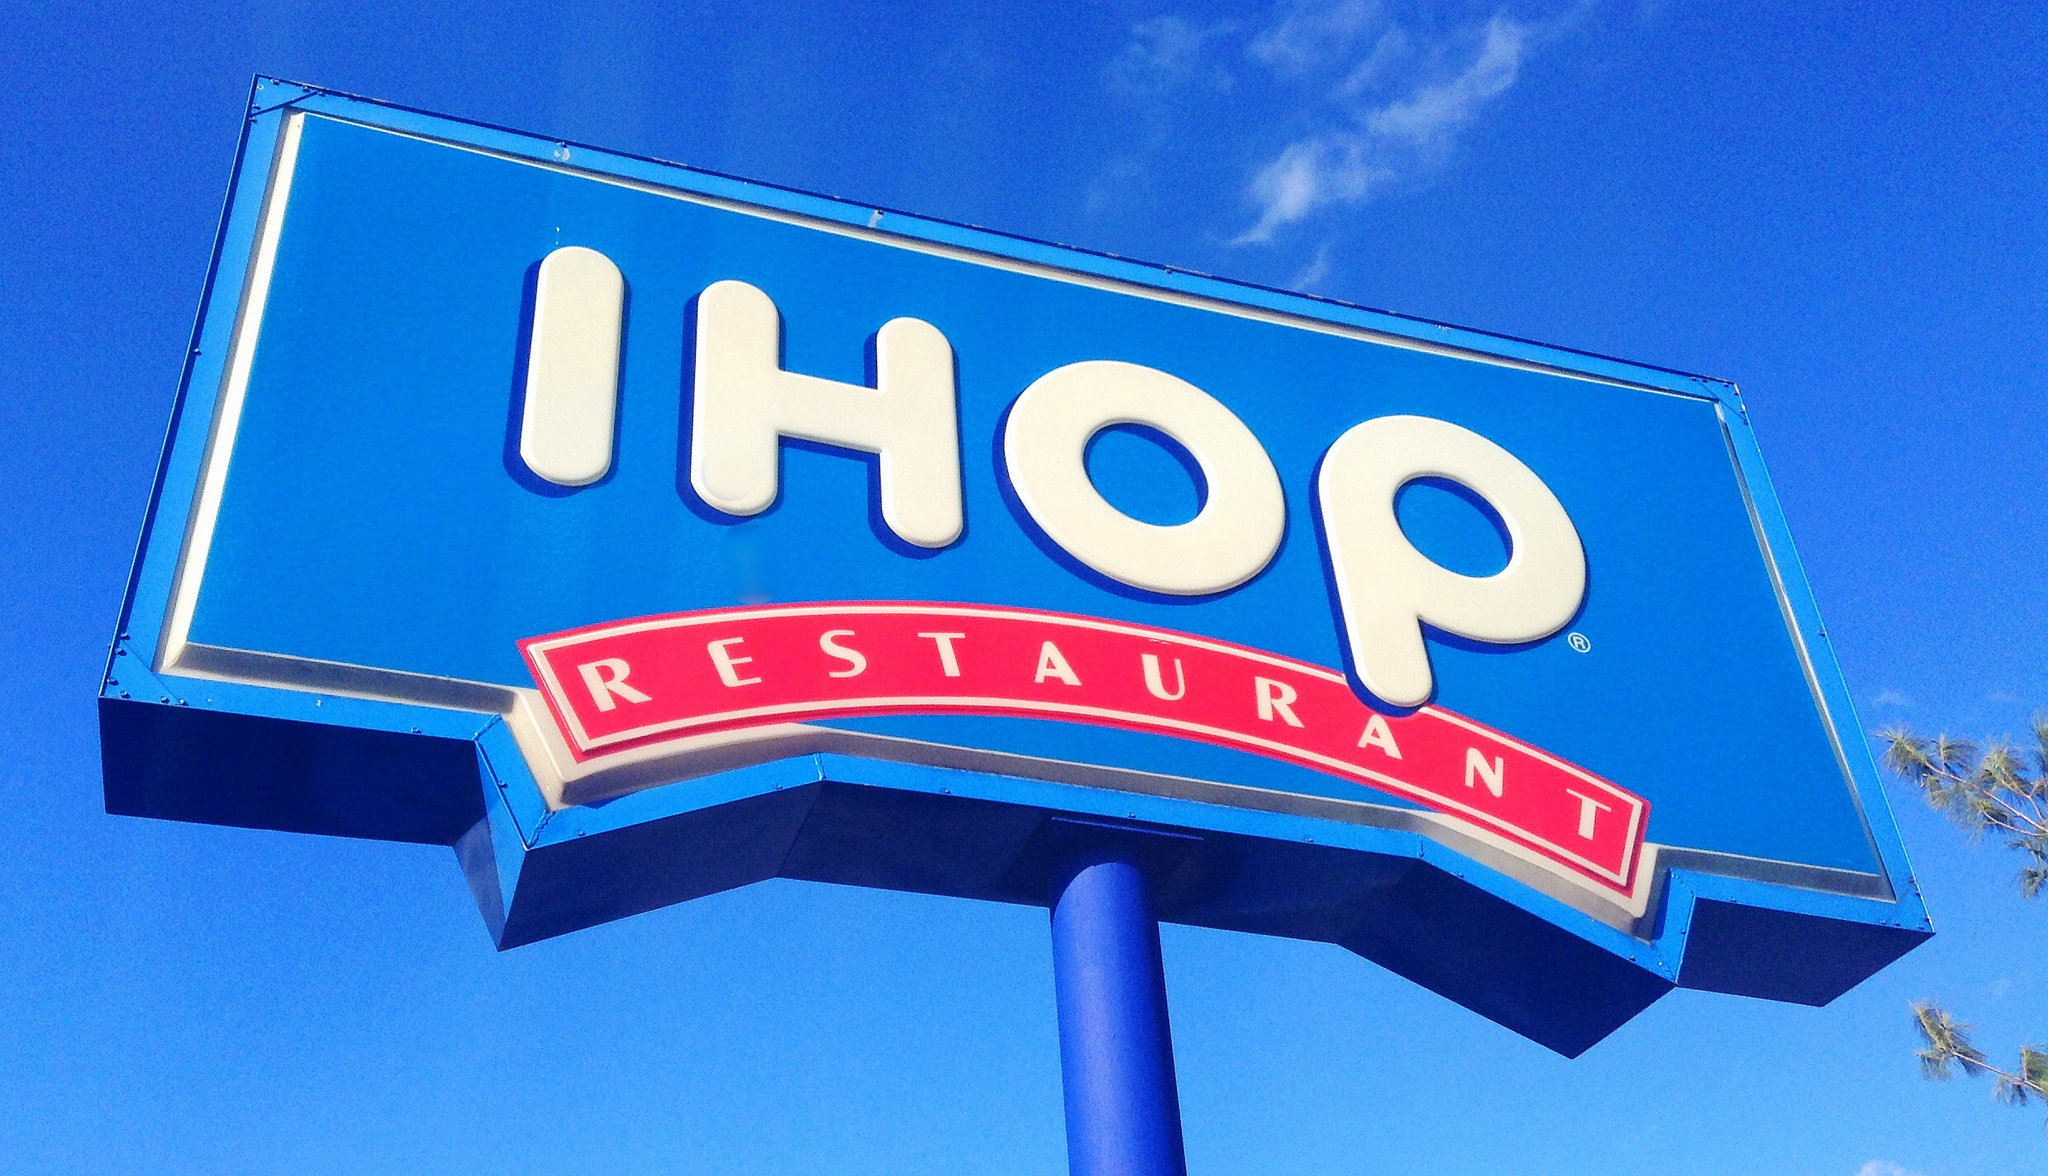 ihop Ihop was established in 1958 as the international house of pancakes from 1992 to 2003, this logo was used simultaneously with the next, more simplistic logo in 2003, it was gradually phased out in favor of the next logo it is still used at a few scant locations.